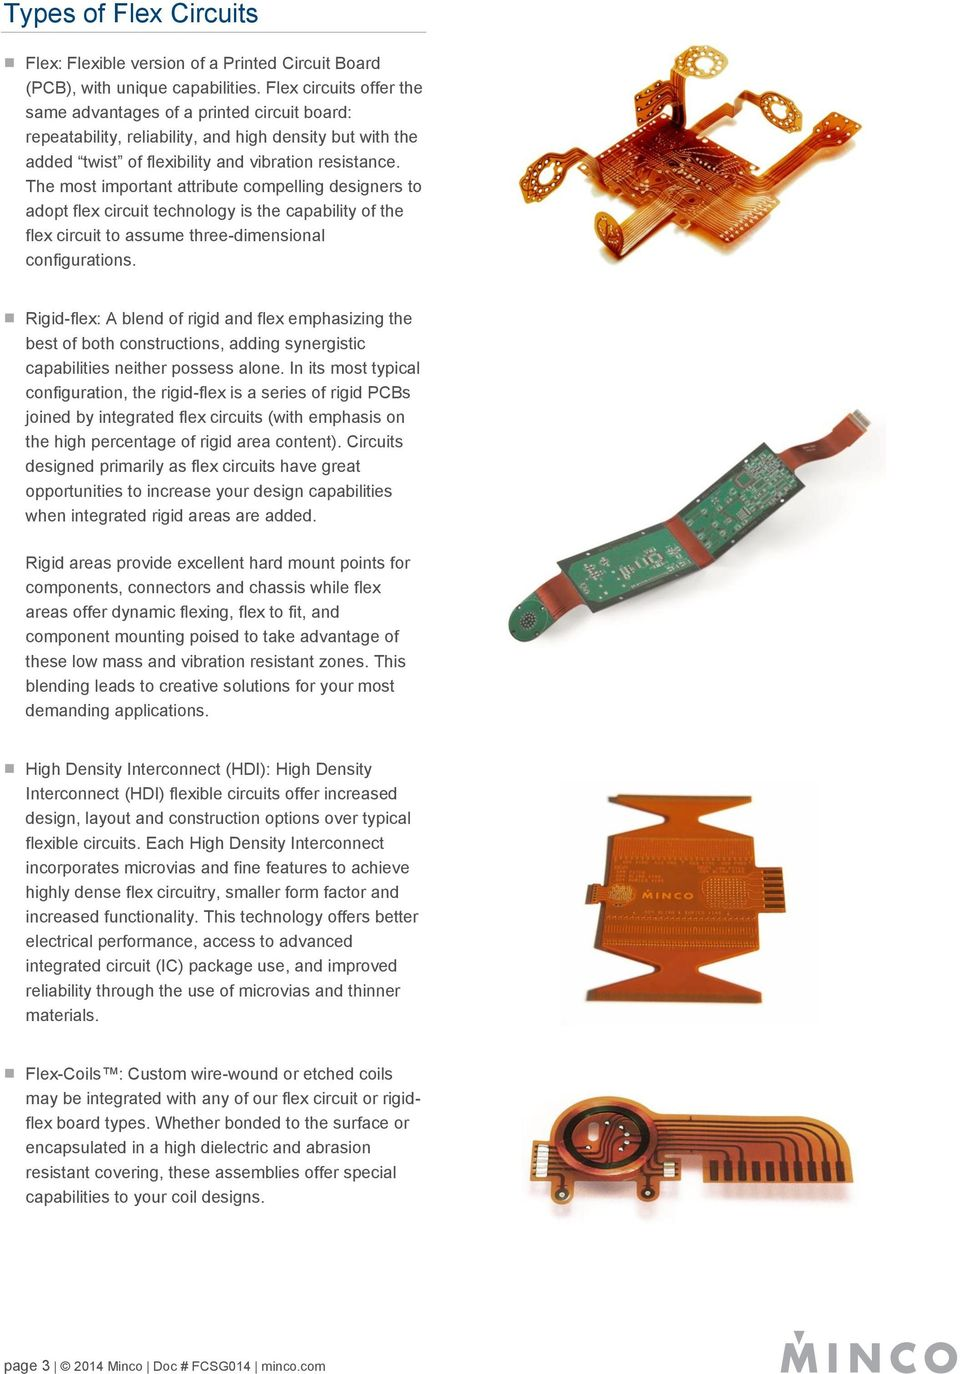 Flex Circuits Design Guide Guidelines For Highly Reliable Printed Circuit Board Using Hdi Technology The Most Important Attribute Compelling Designers To Adopt Is Capability Of